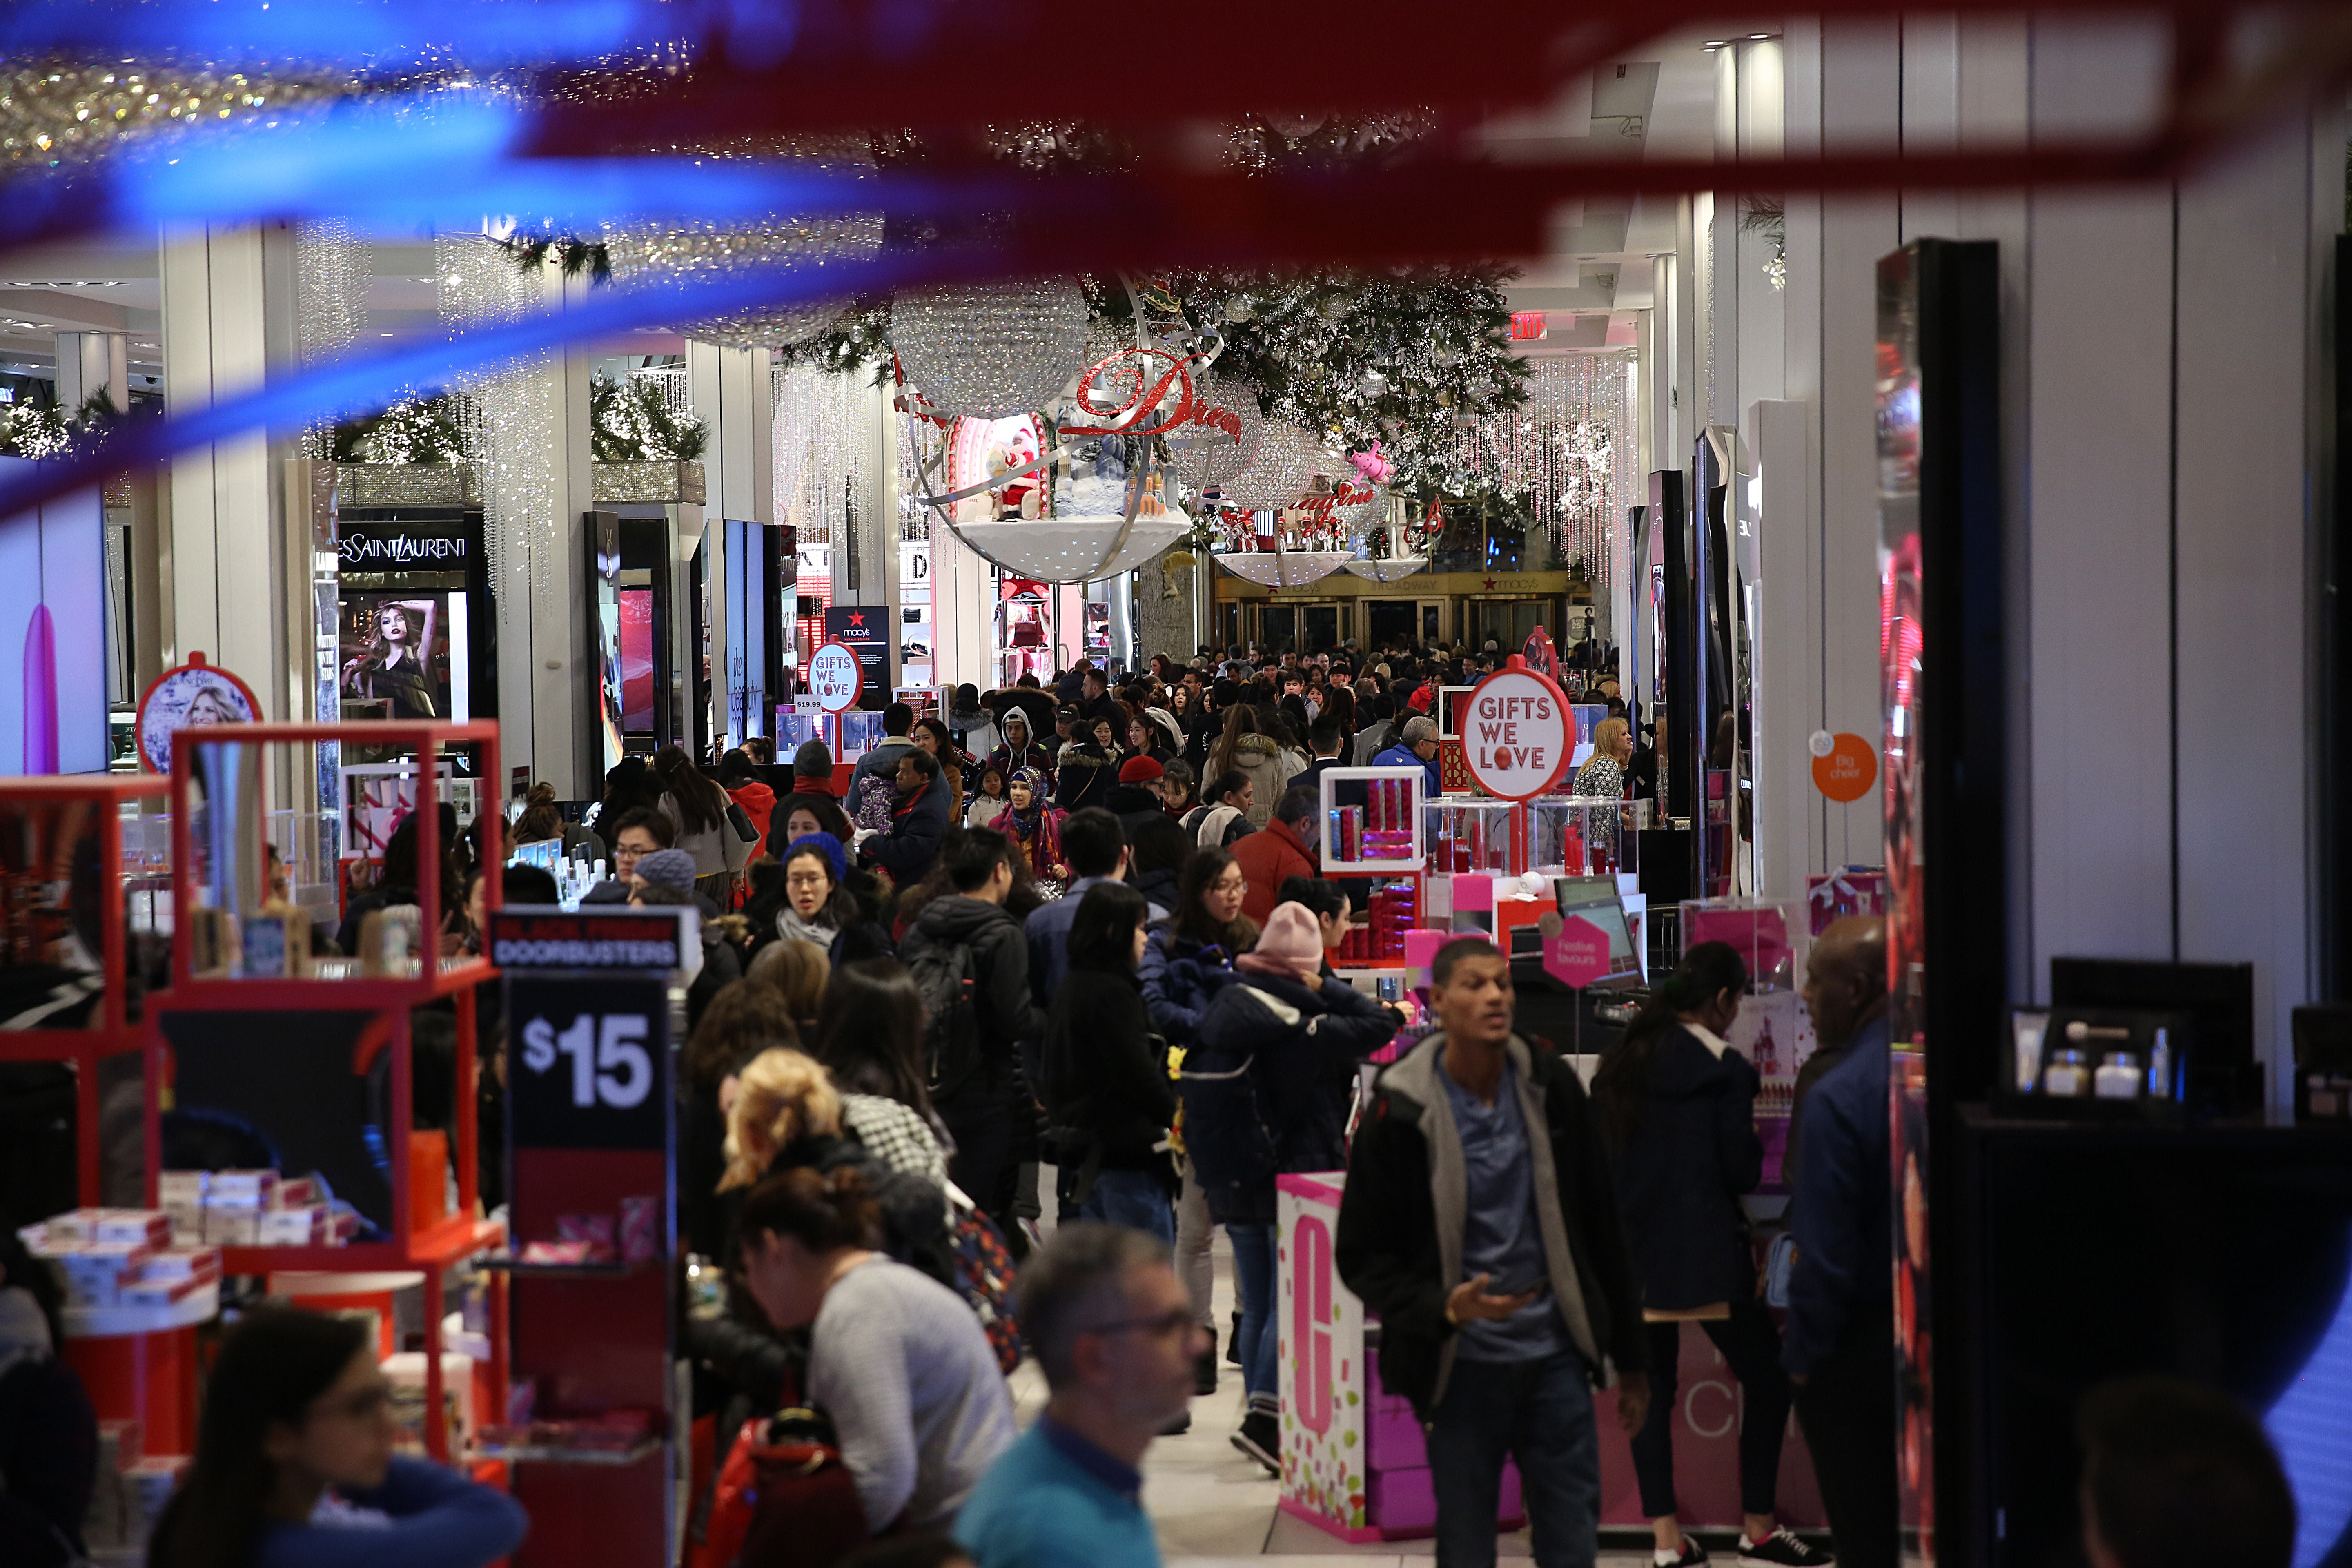 People shopping at a busy Macy's store on Black Friday in Midtown Manhattan on November 23, 2017 in New York, United States.